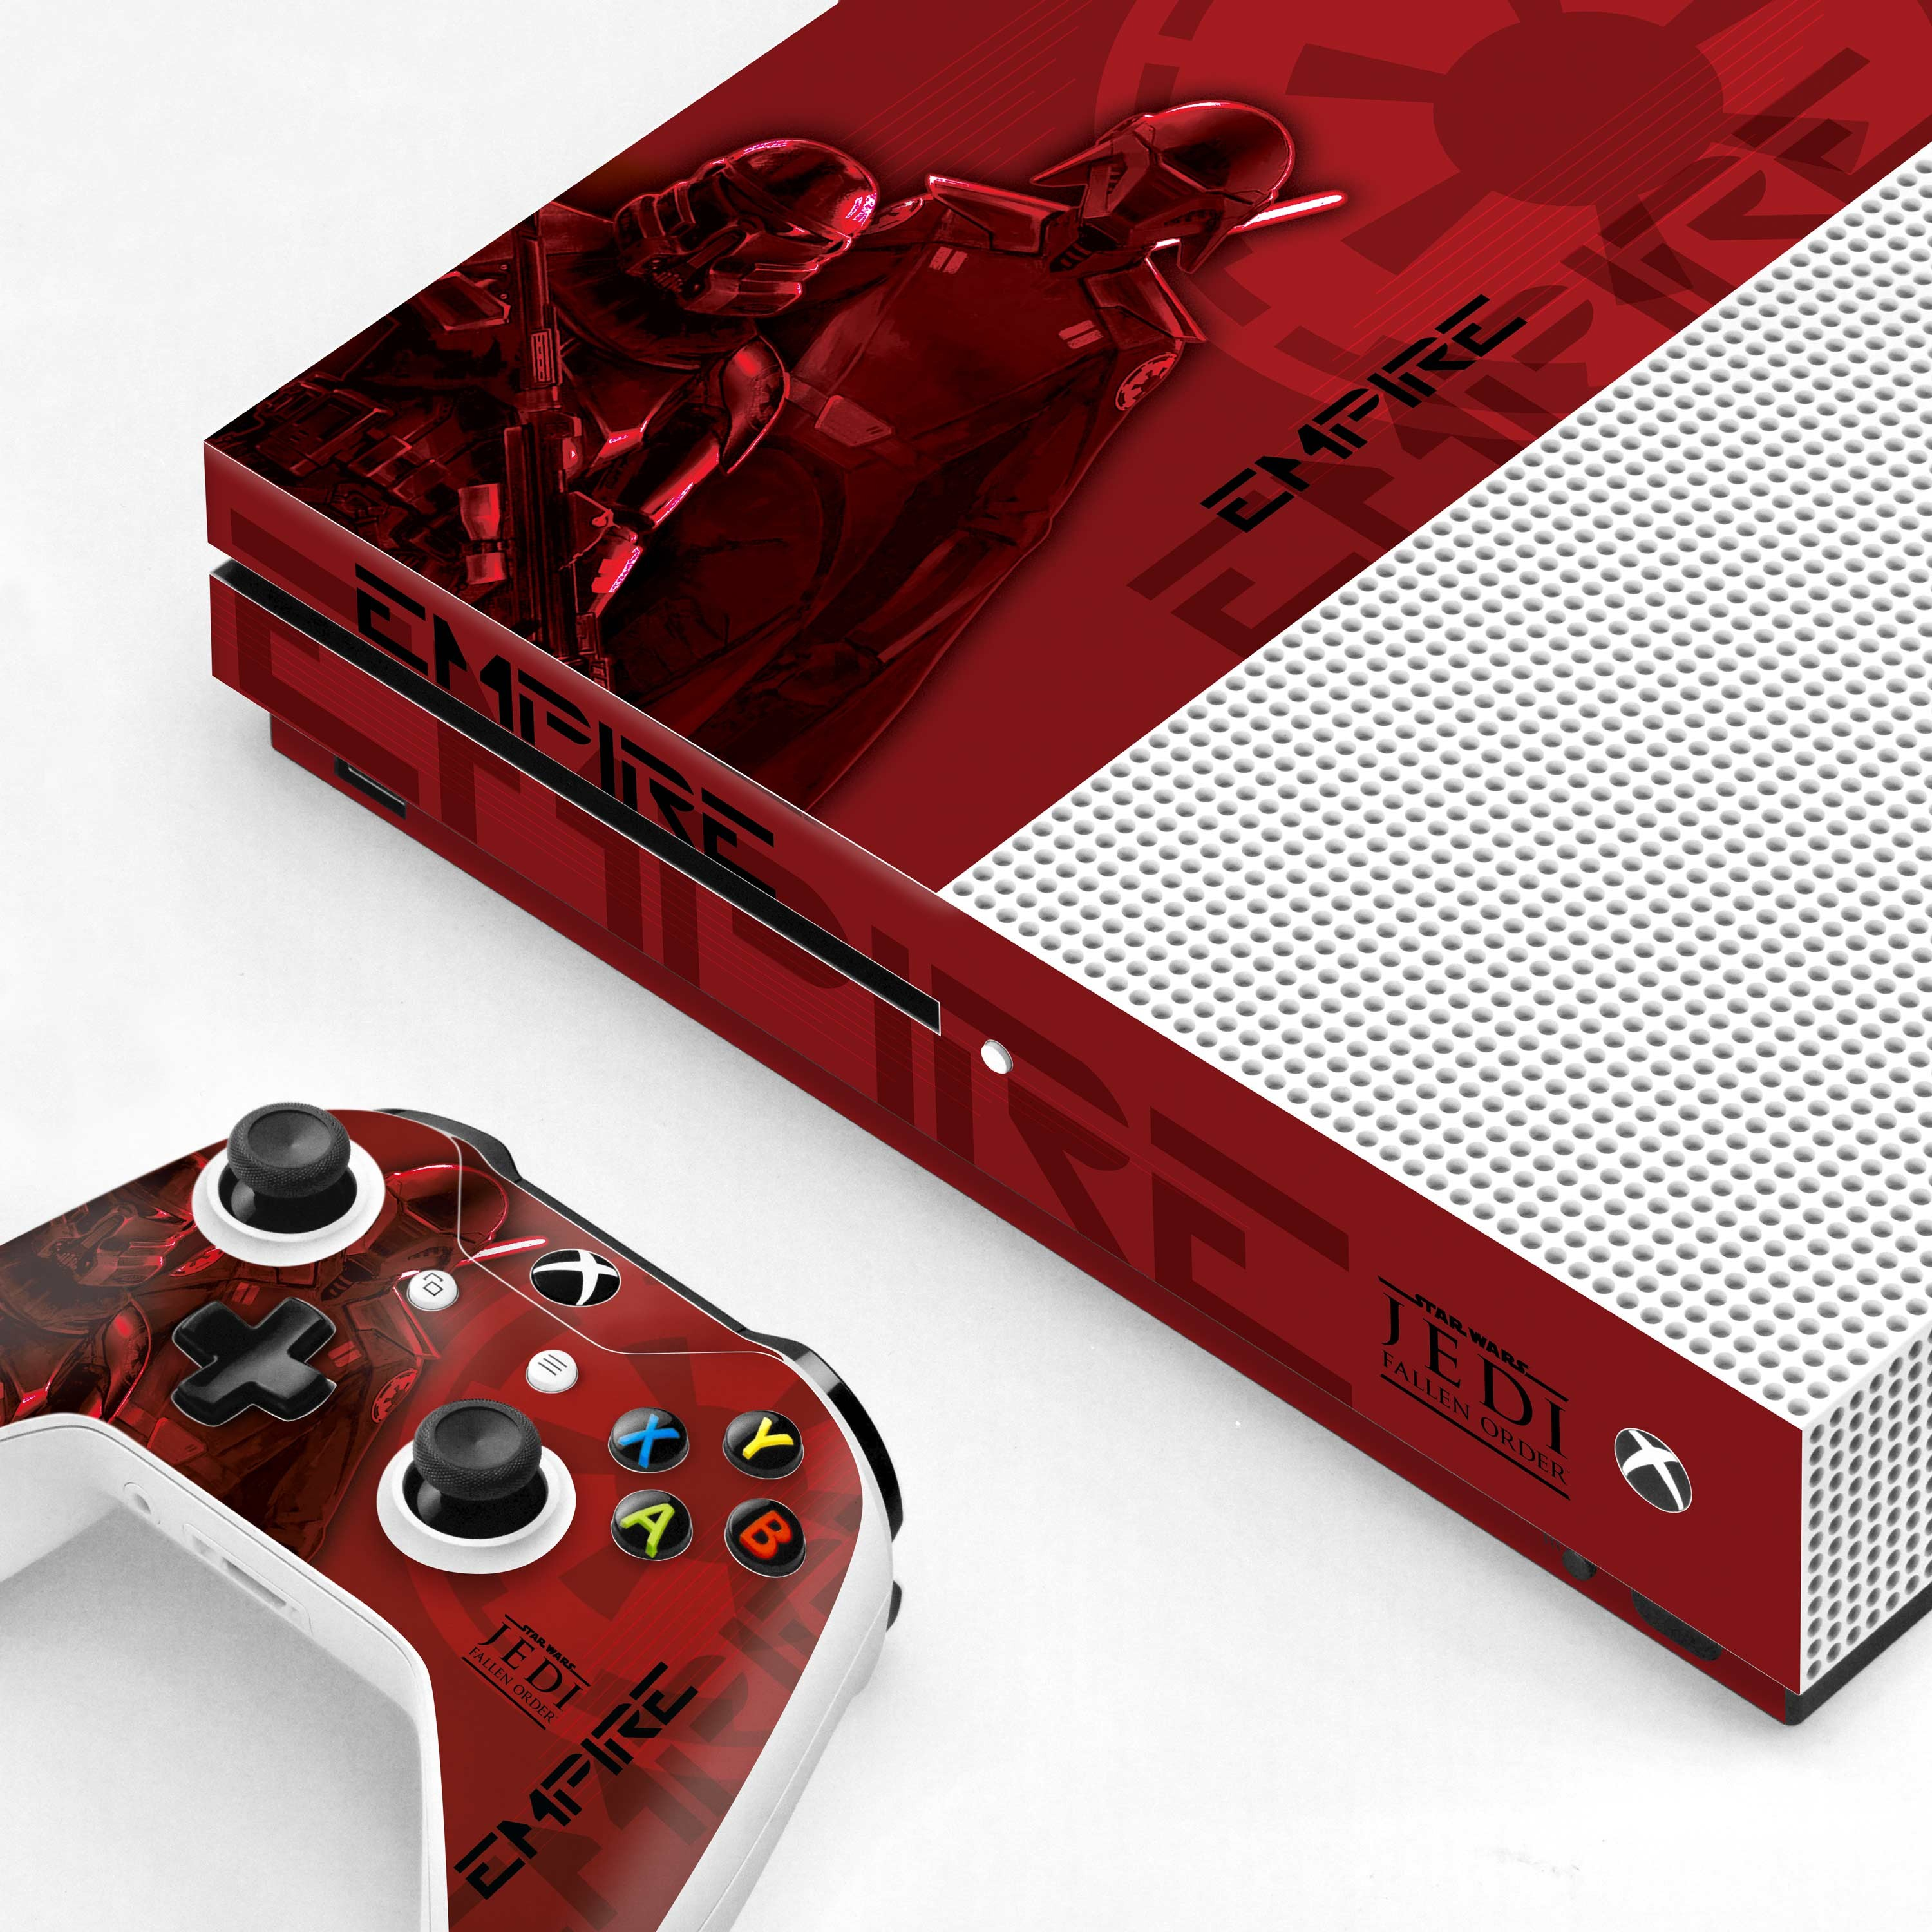 Xbox One S Console and Controller Skin with a Star Wars Jedi Fallen Order Inquisitor/Purge Trooper Design, Image 1